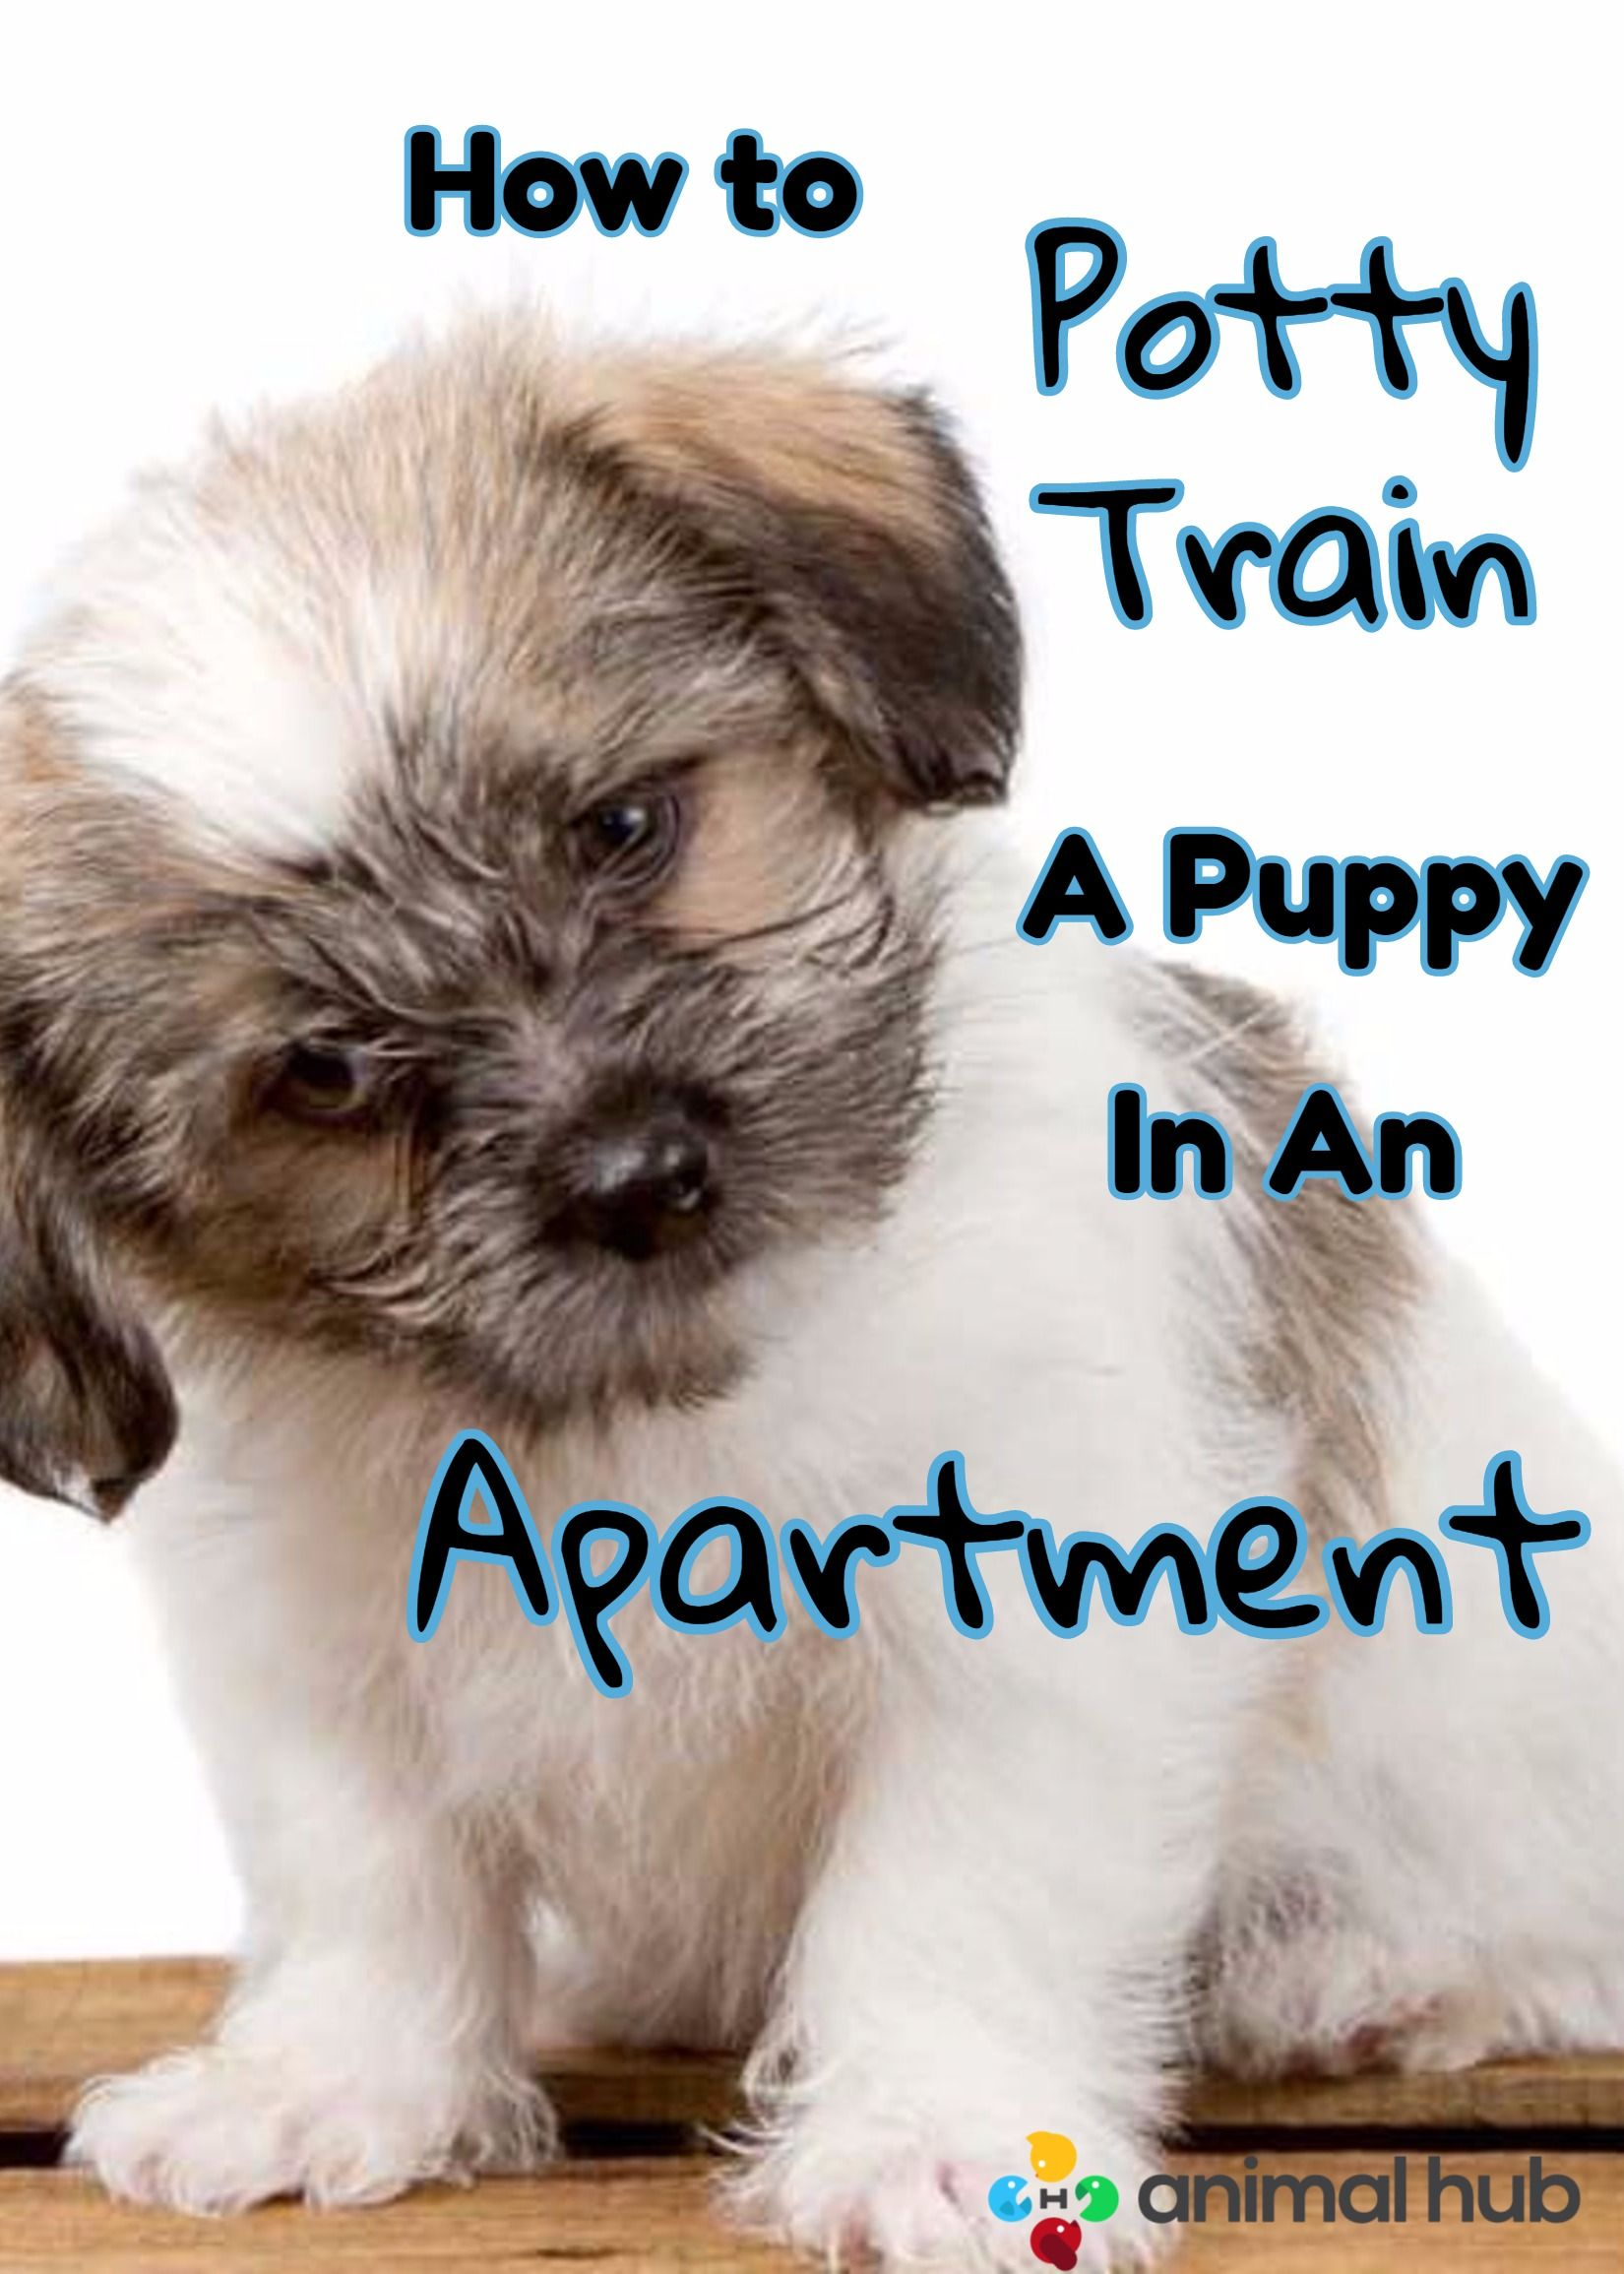 How To Potty Train A Puppy In An Apartment Animal Hub